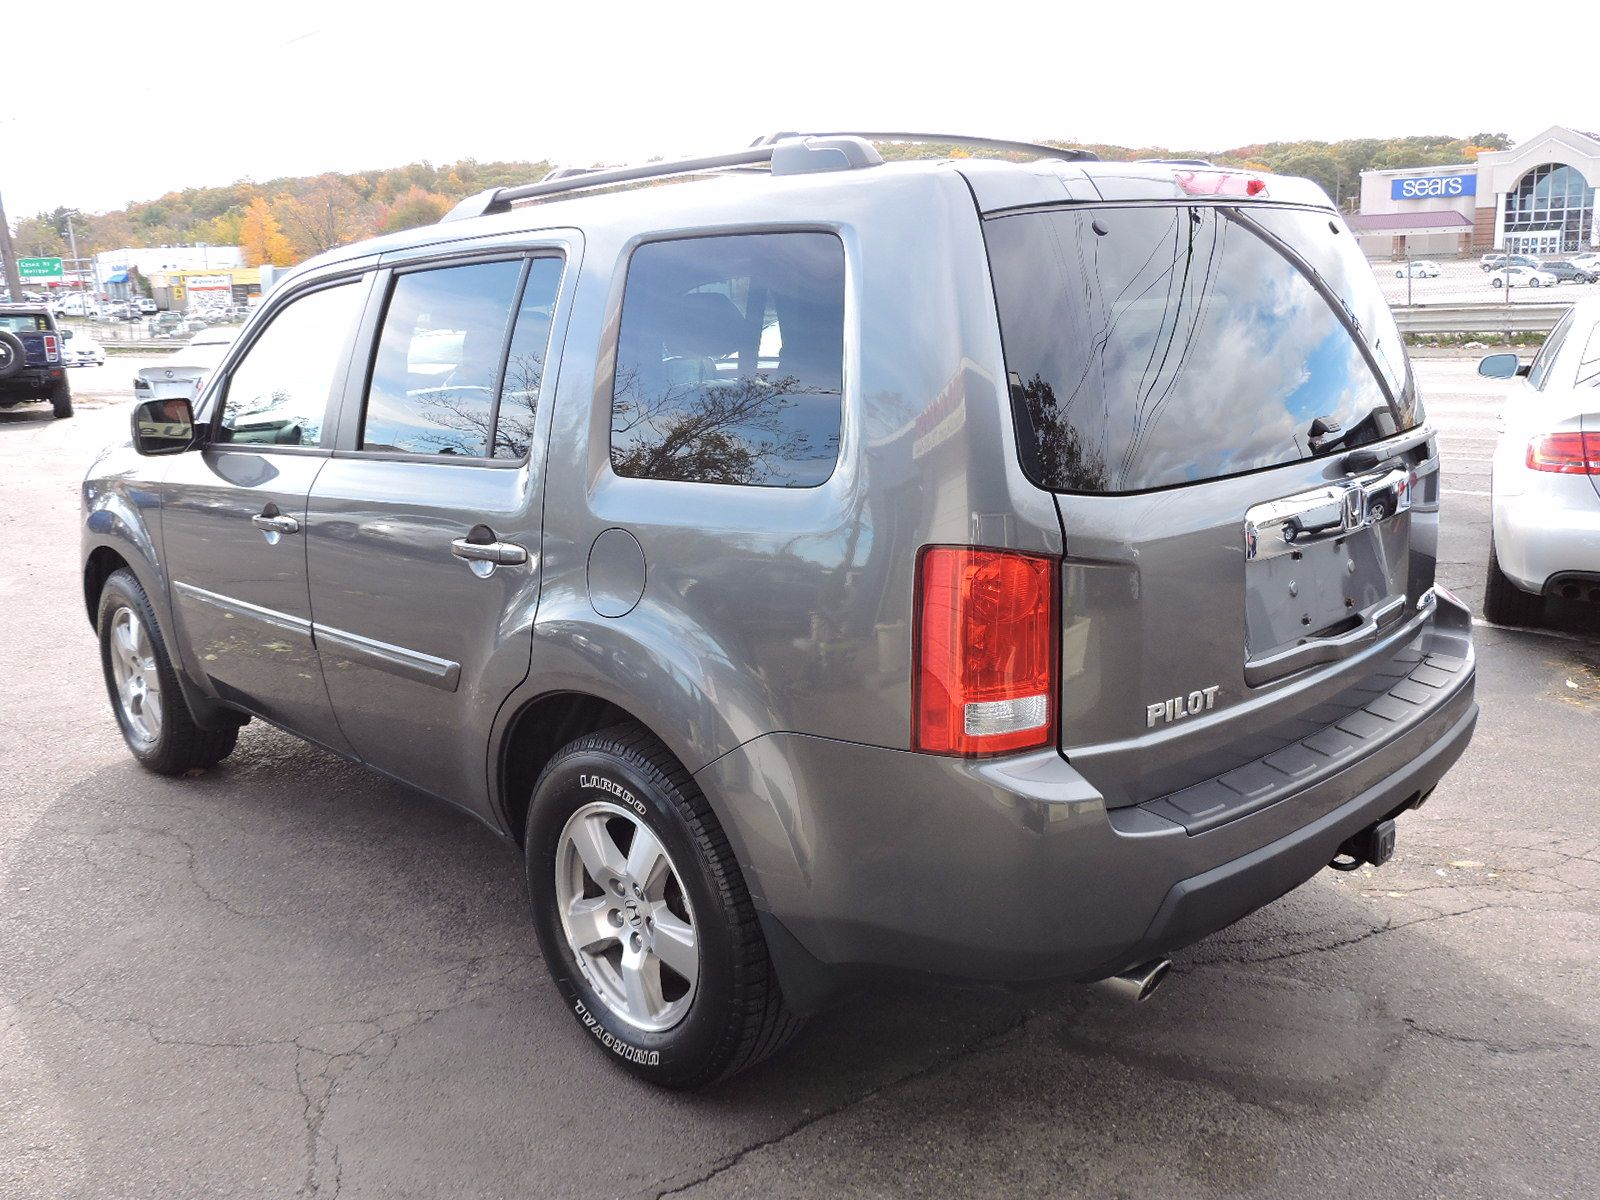 2011 Honda Pilot EX-L - All Wheel Drive